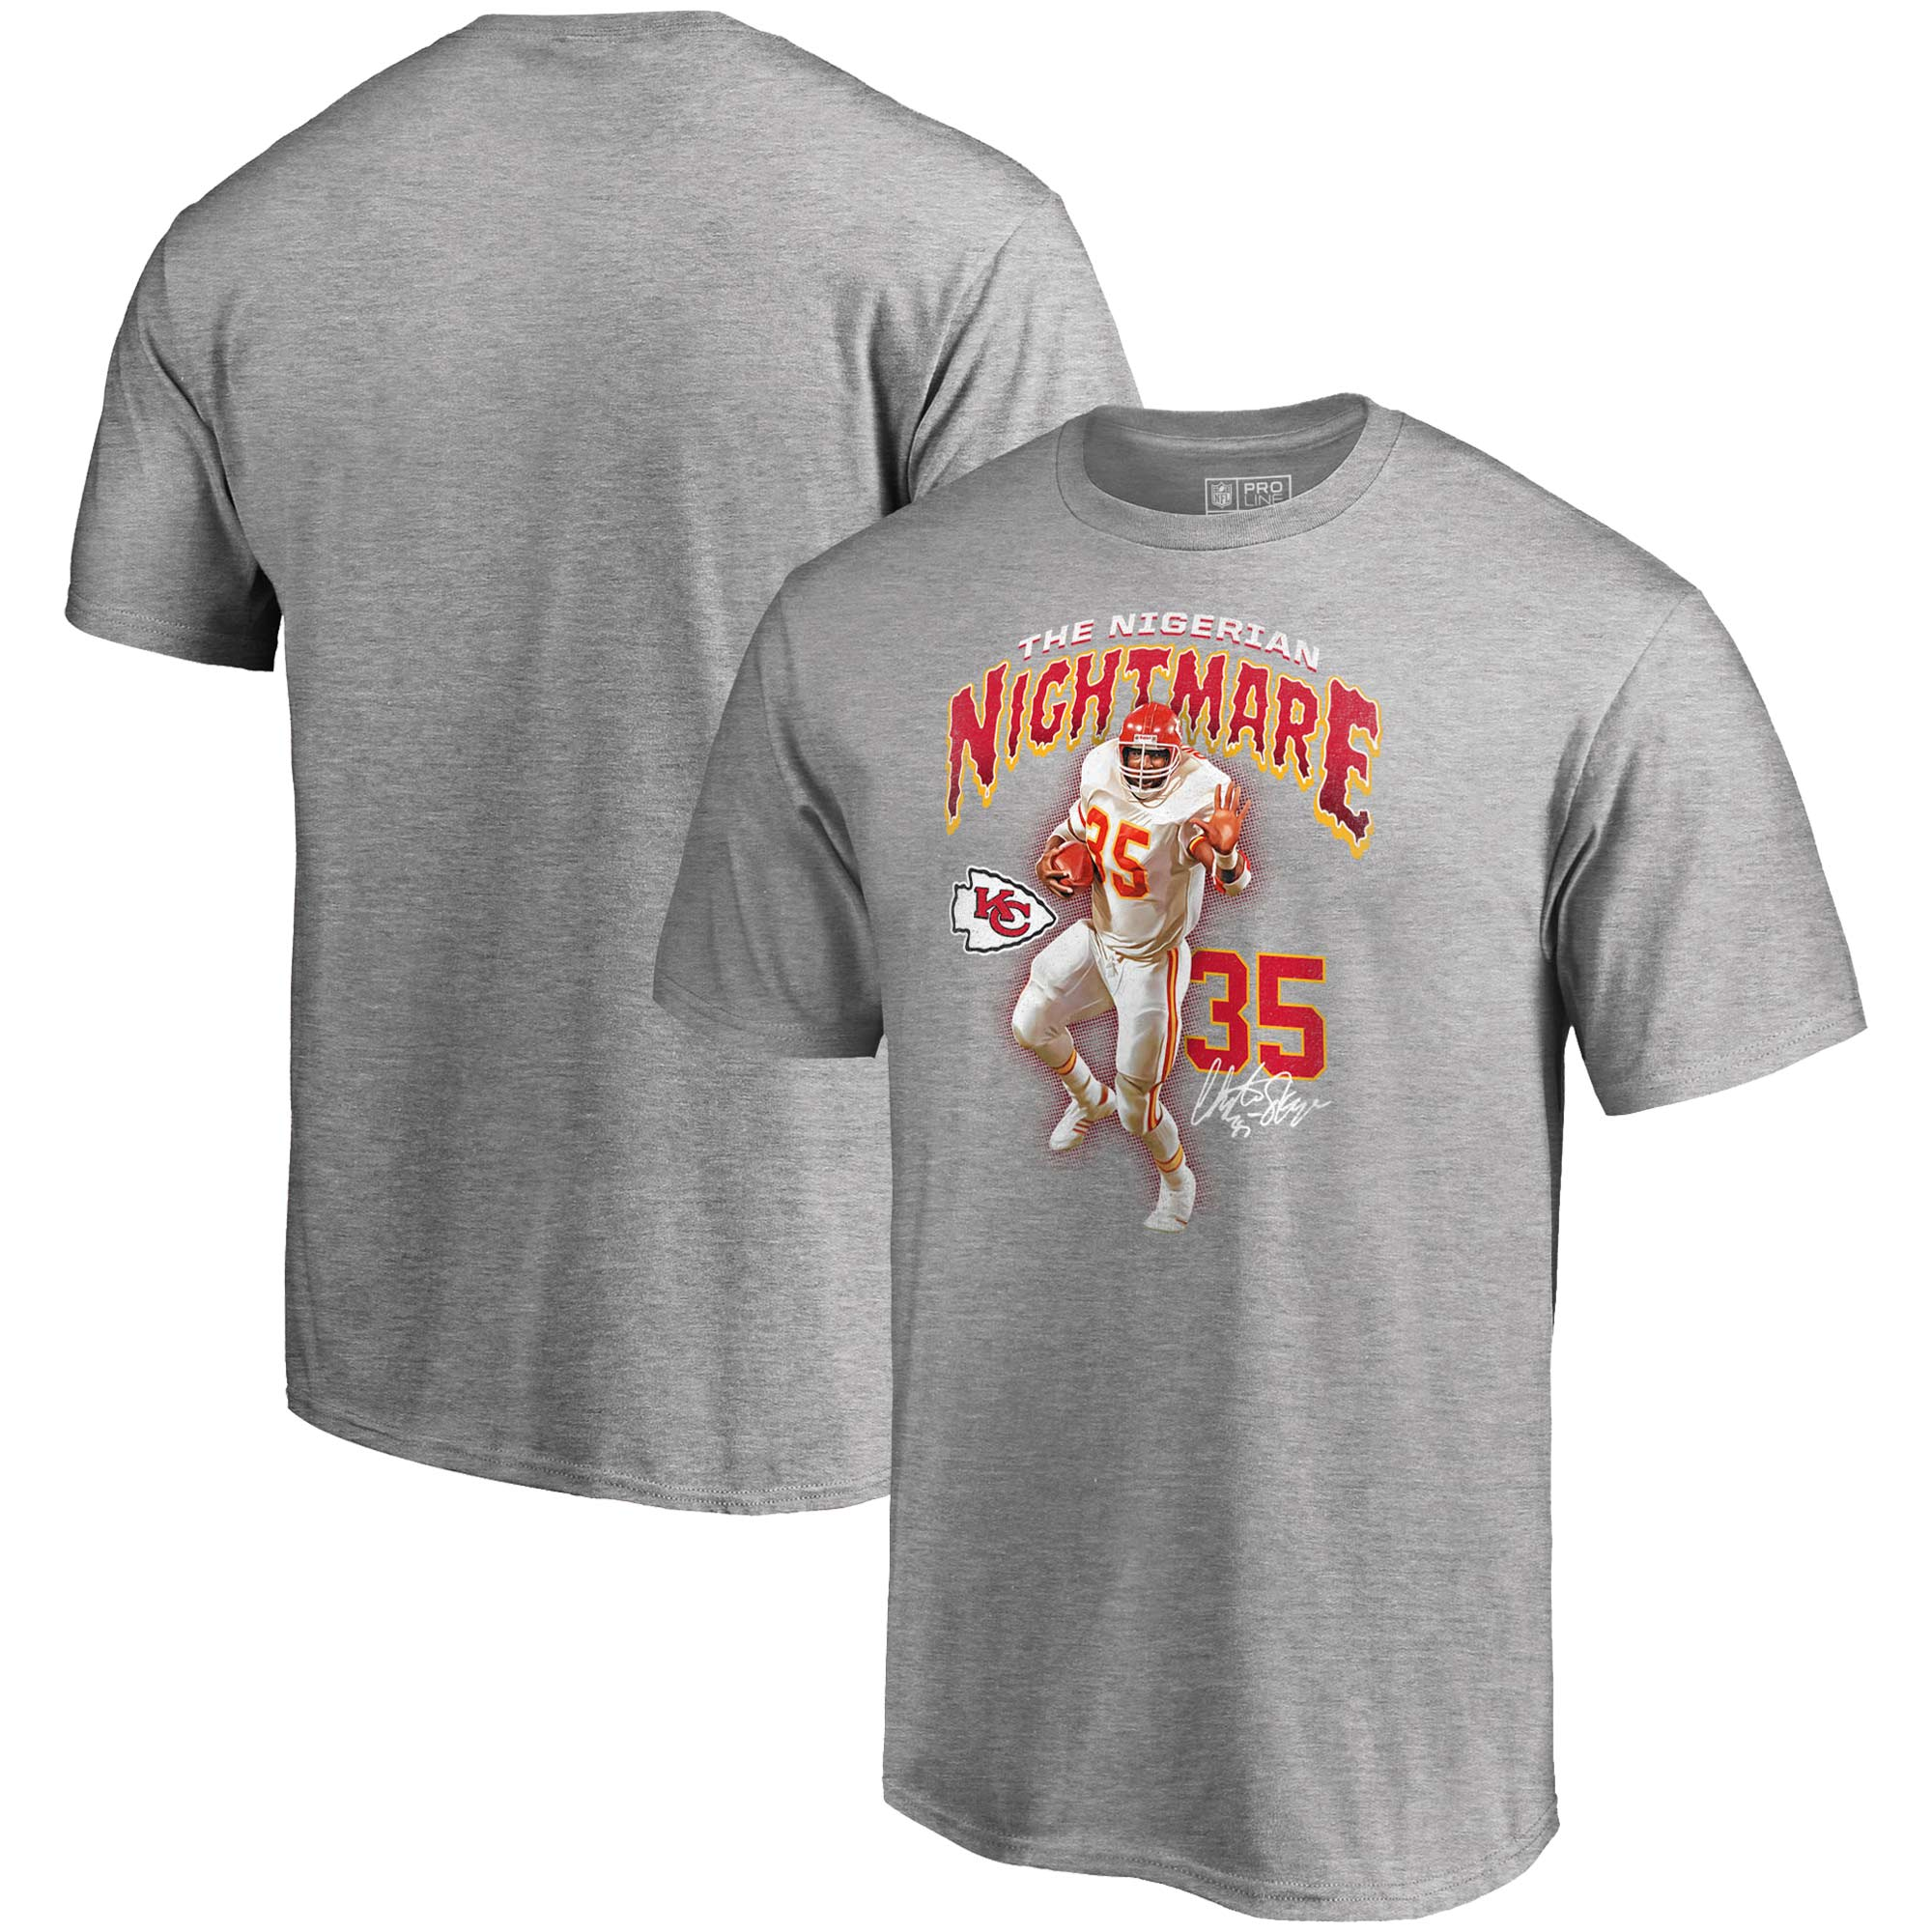 Christian Okoye Kansas City Chiefs NFL Pro Line by Fanatics Branded Nigerian Nightmare T-Shirt - Gray